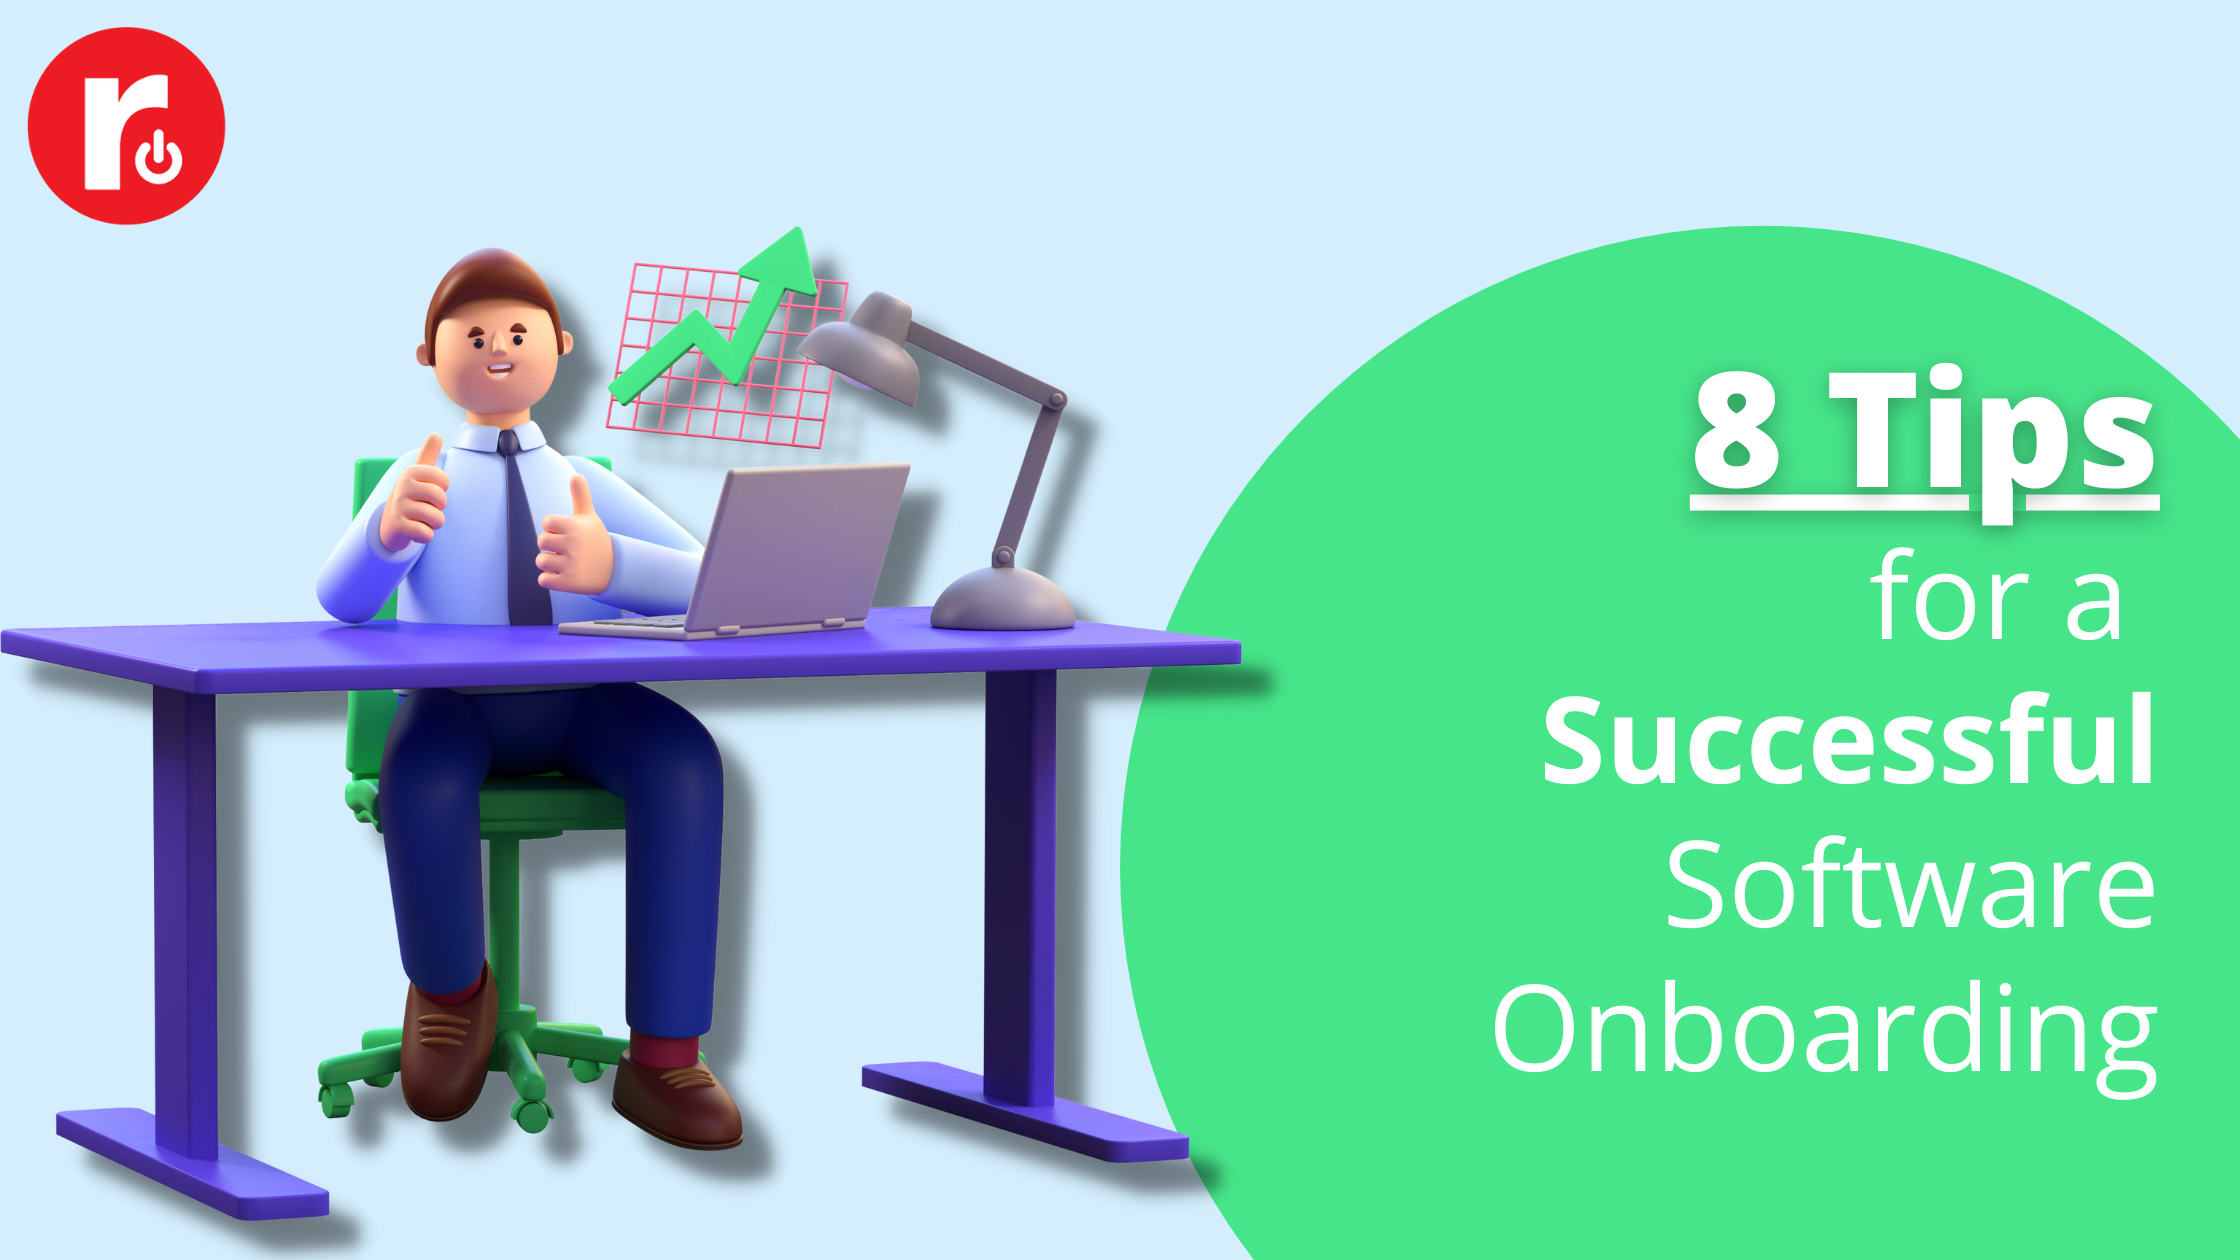 8 Tips for a Successful Software Onboarding